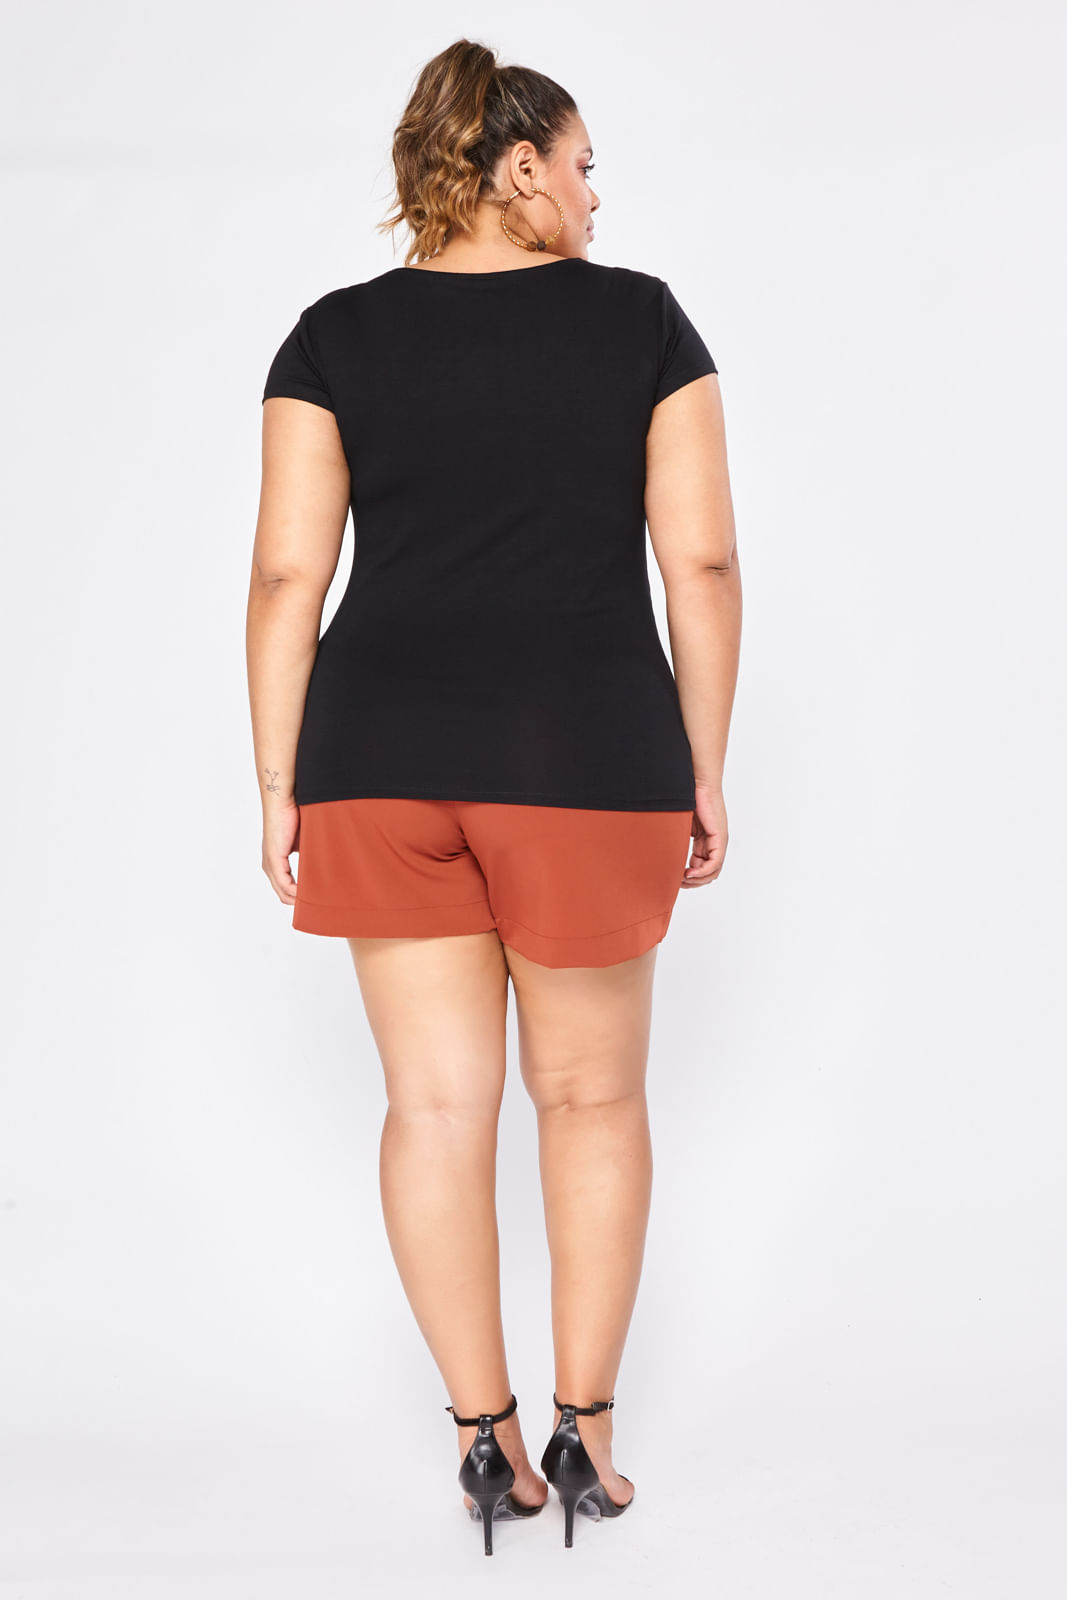 ANS002_Blusa_Plus_Size_Color_Preto_5